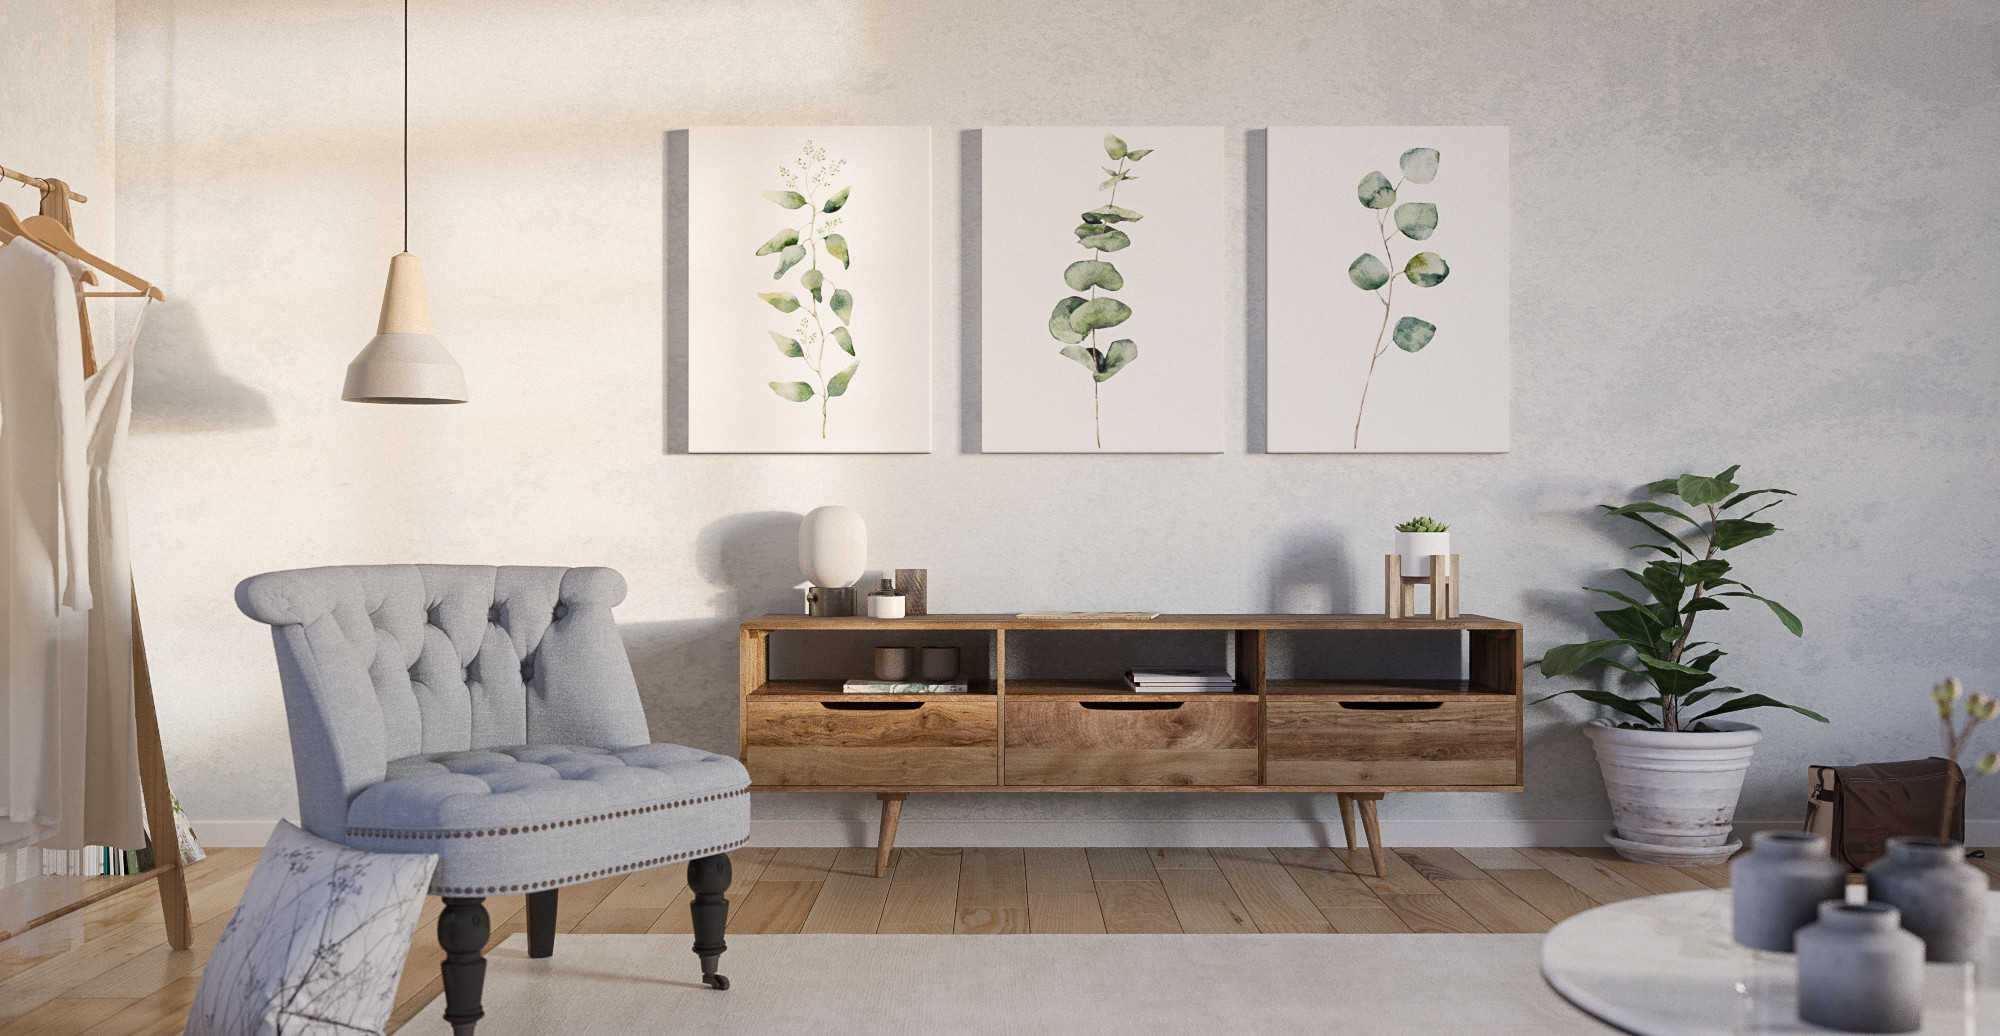 Brosa The Eucalyptus Triptych Set of 3 styled in classic traditional living room